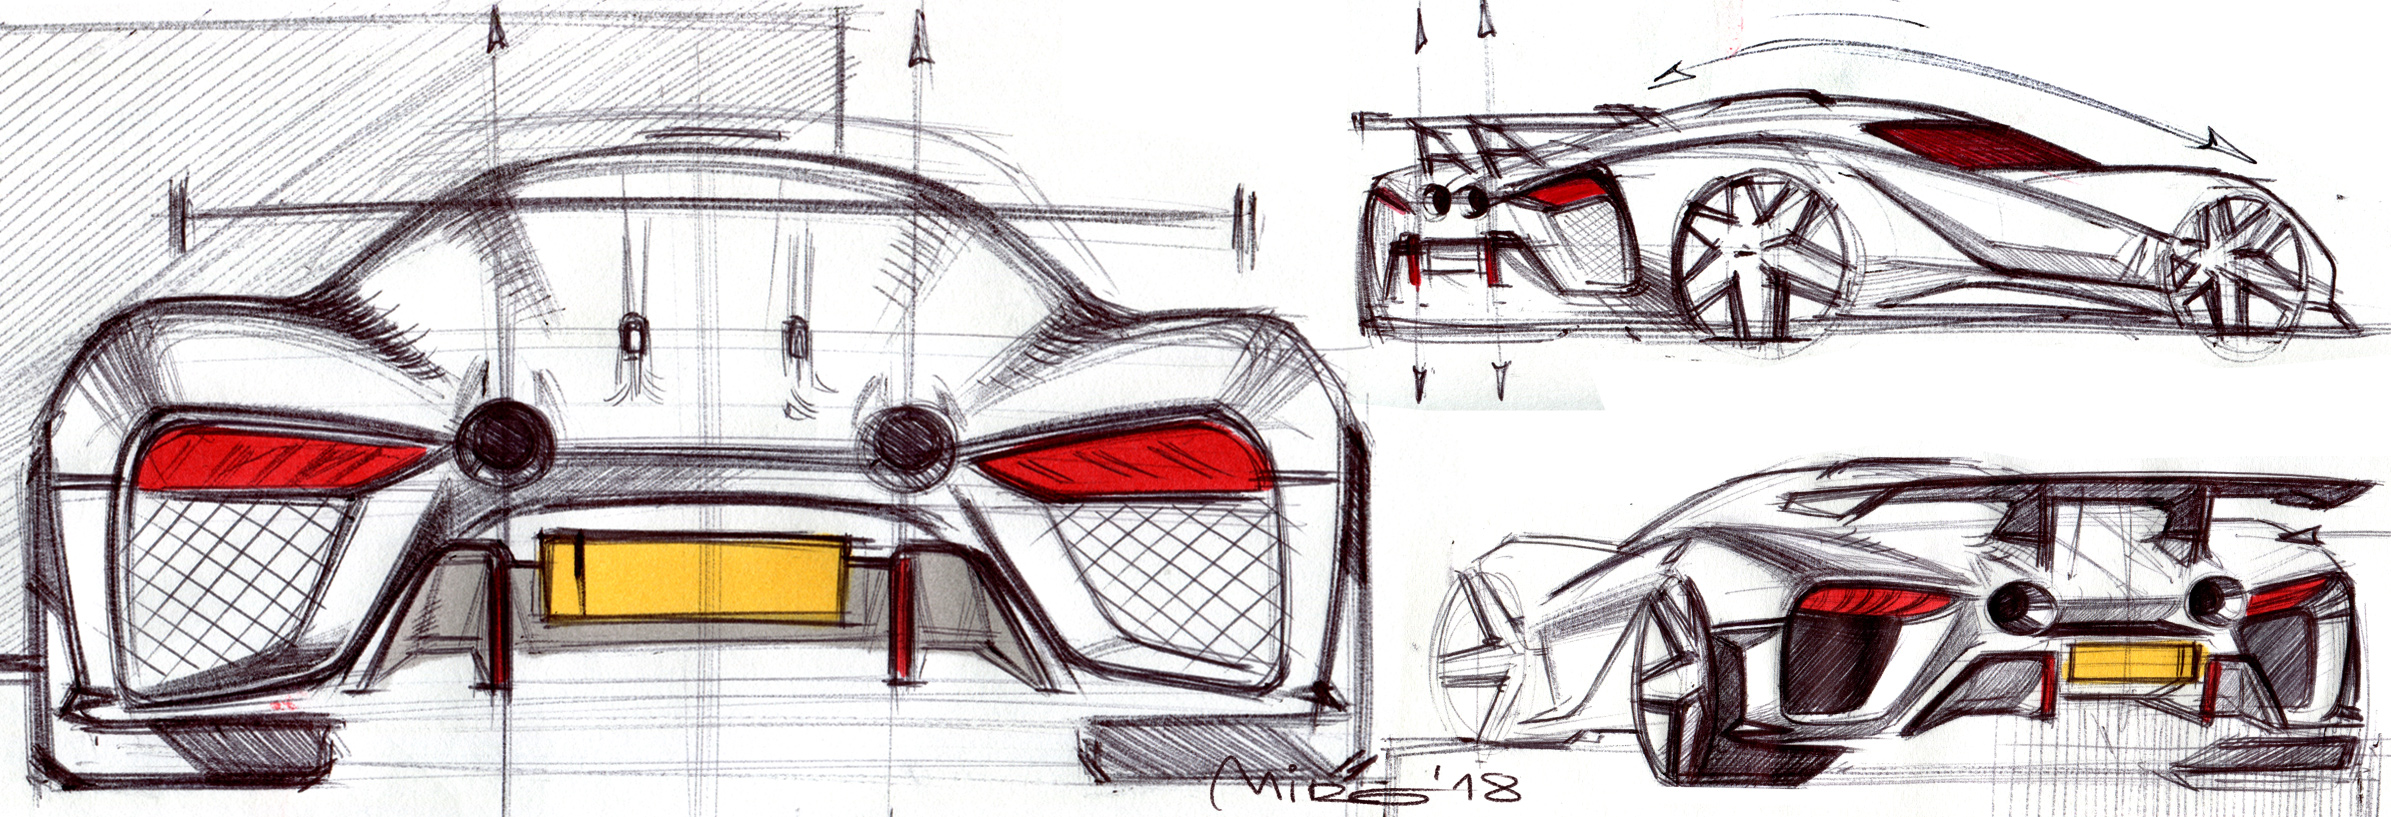 EIDO GTR Concept, rear end design sketches